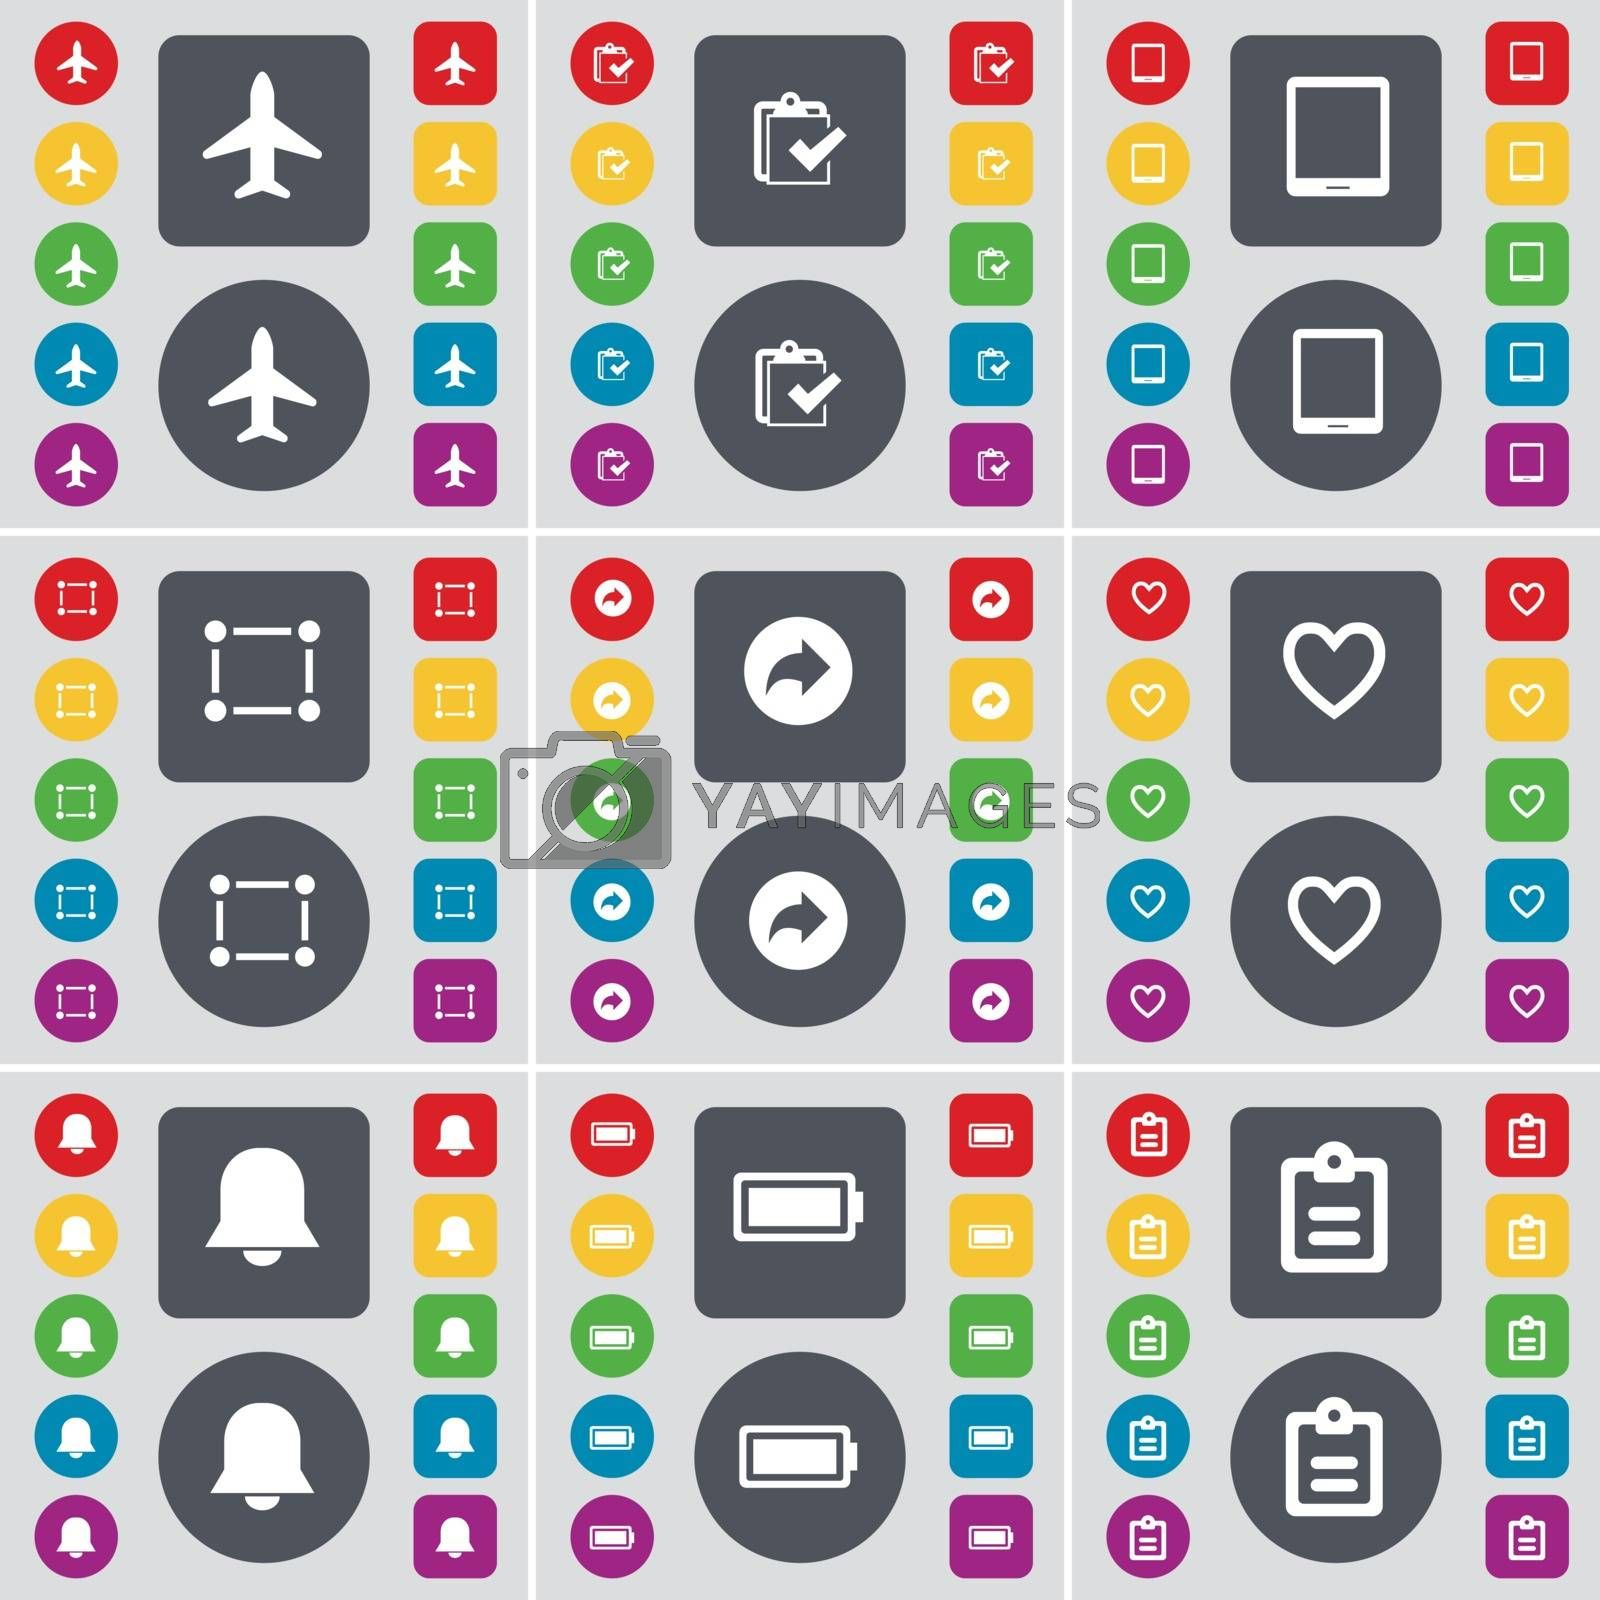 Royalty free image of Airplane, Survey, Tablet PC, Frame, Back, Heart, Notiification, Battery, Survey icon symbol. A large set of flat, colored buttons for your design. Vector by serhii_lohvyniuk